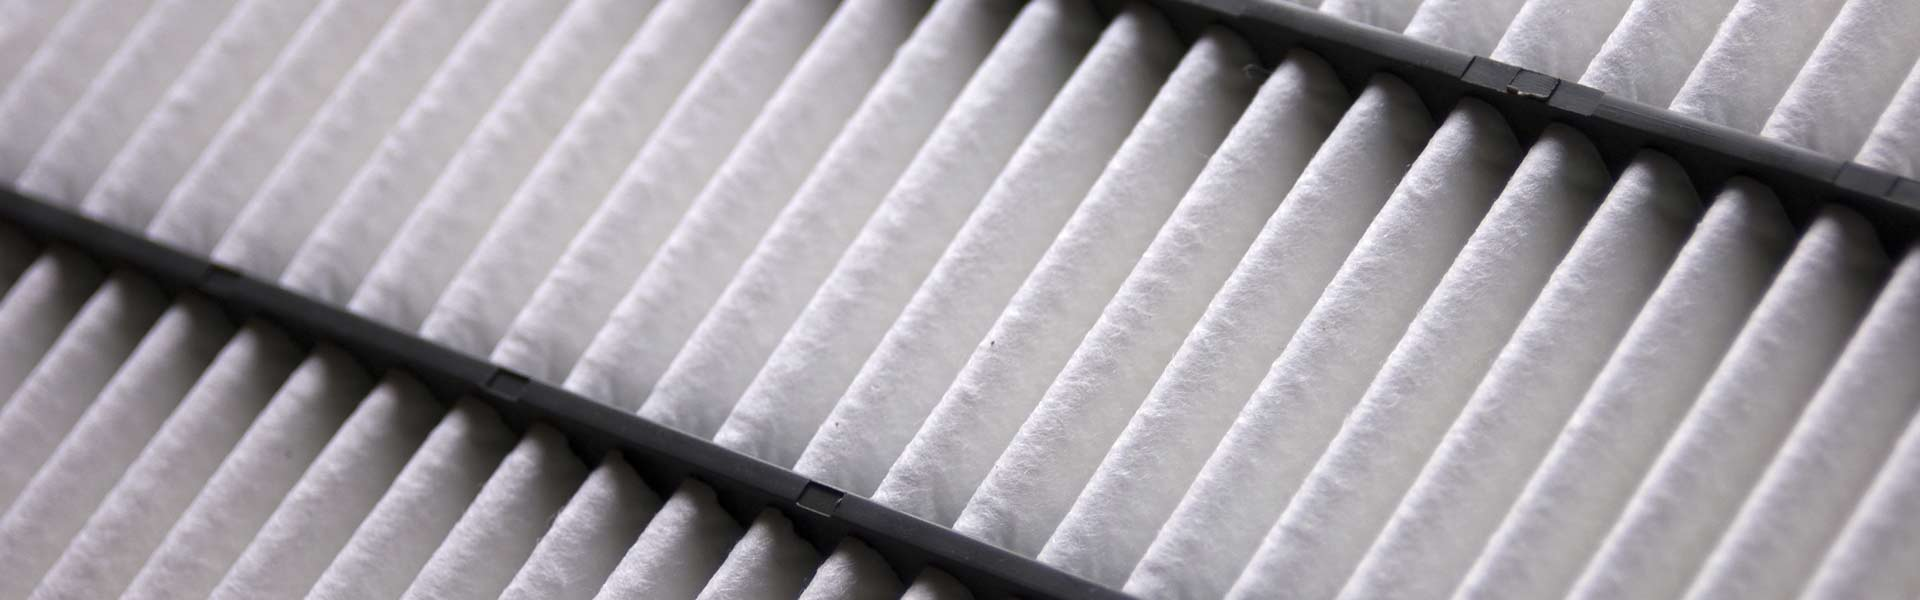 Filter for a Air Filtration Systems